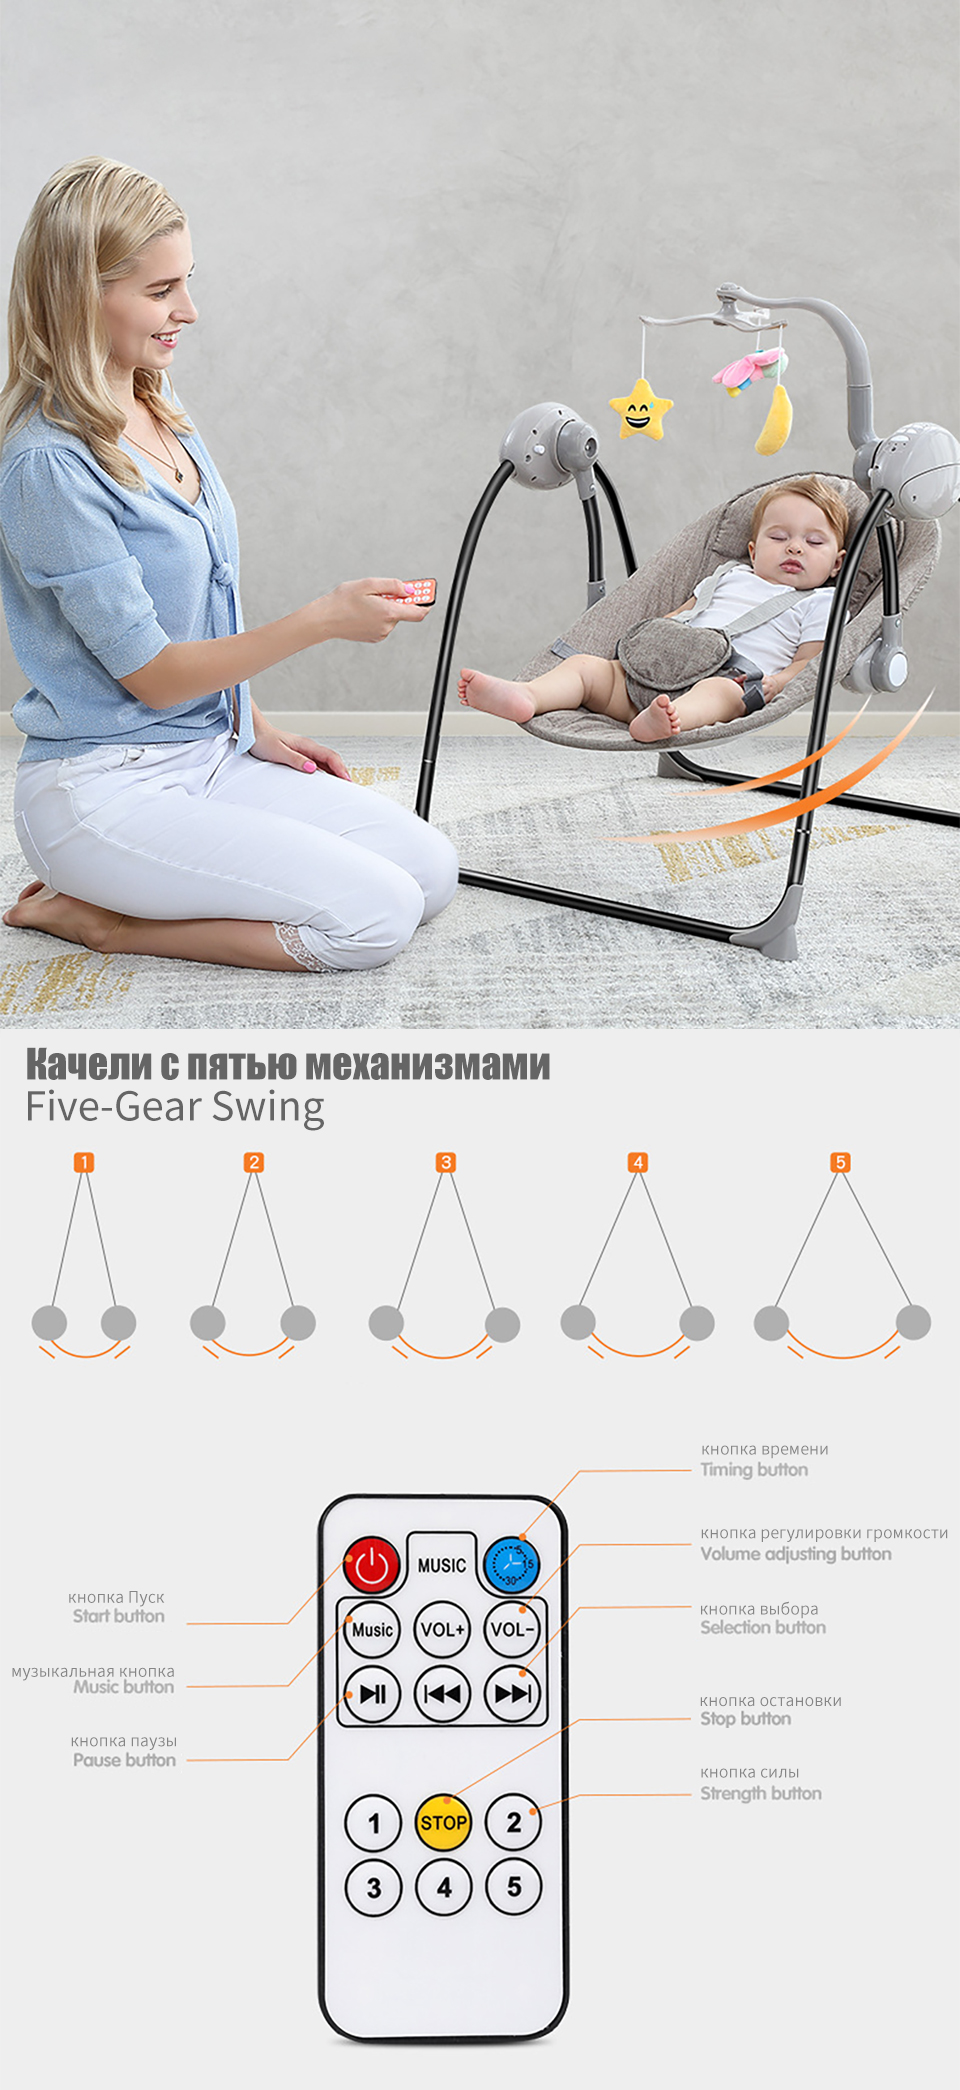 H575c35336bbe434fbdedbd74cb283ab0d IMBABY Baby Rocking Chair Baby Swing Electric Baby Cradle With Remote Control Cradle  Rocking Chair For Newborns Swing Chair